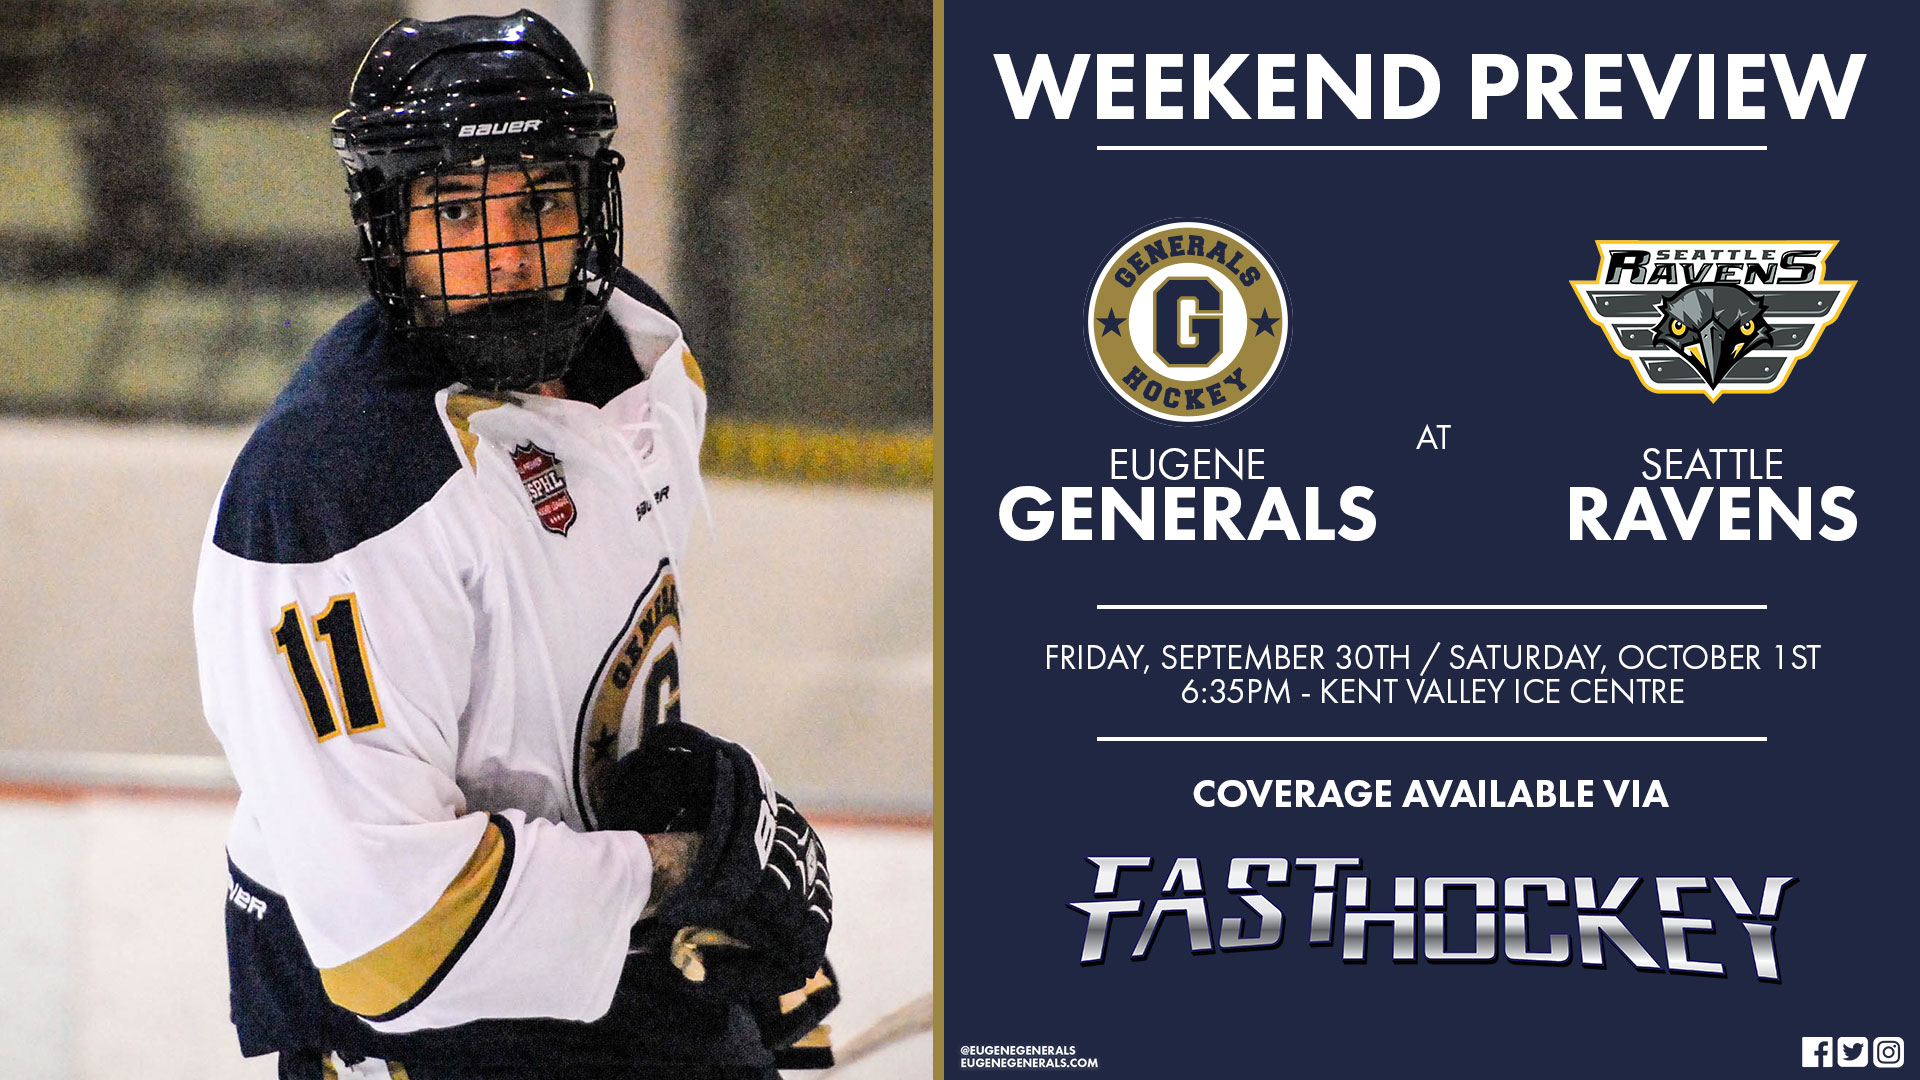 Weekend Preview - Generals And Ravens Set To Clash In Kent